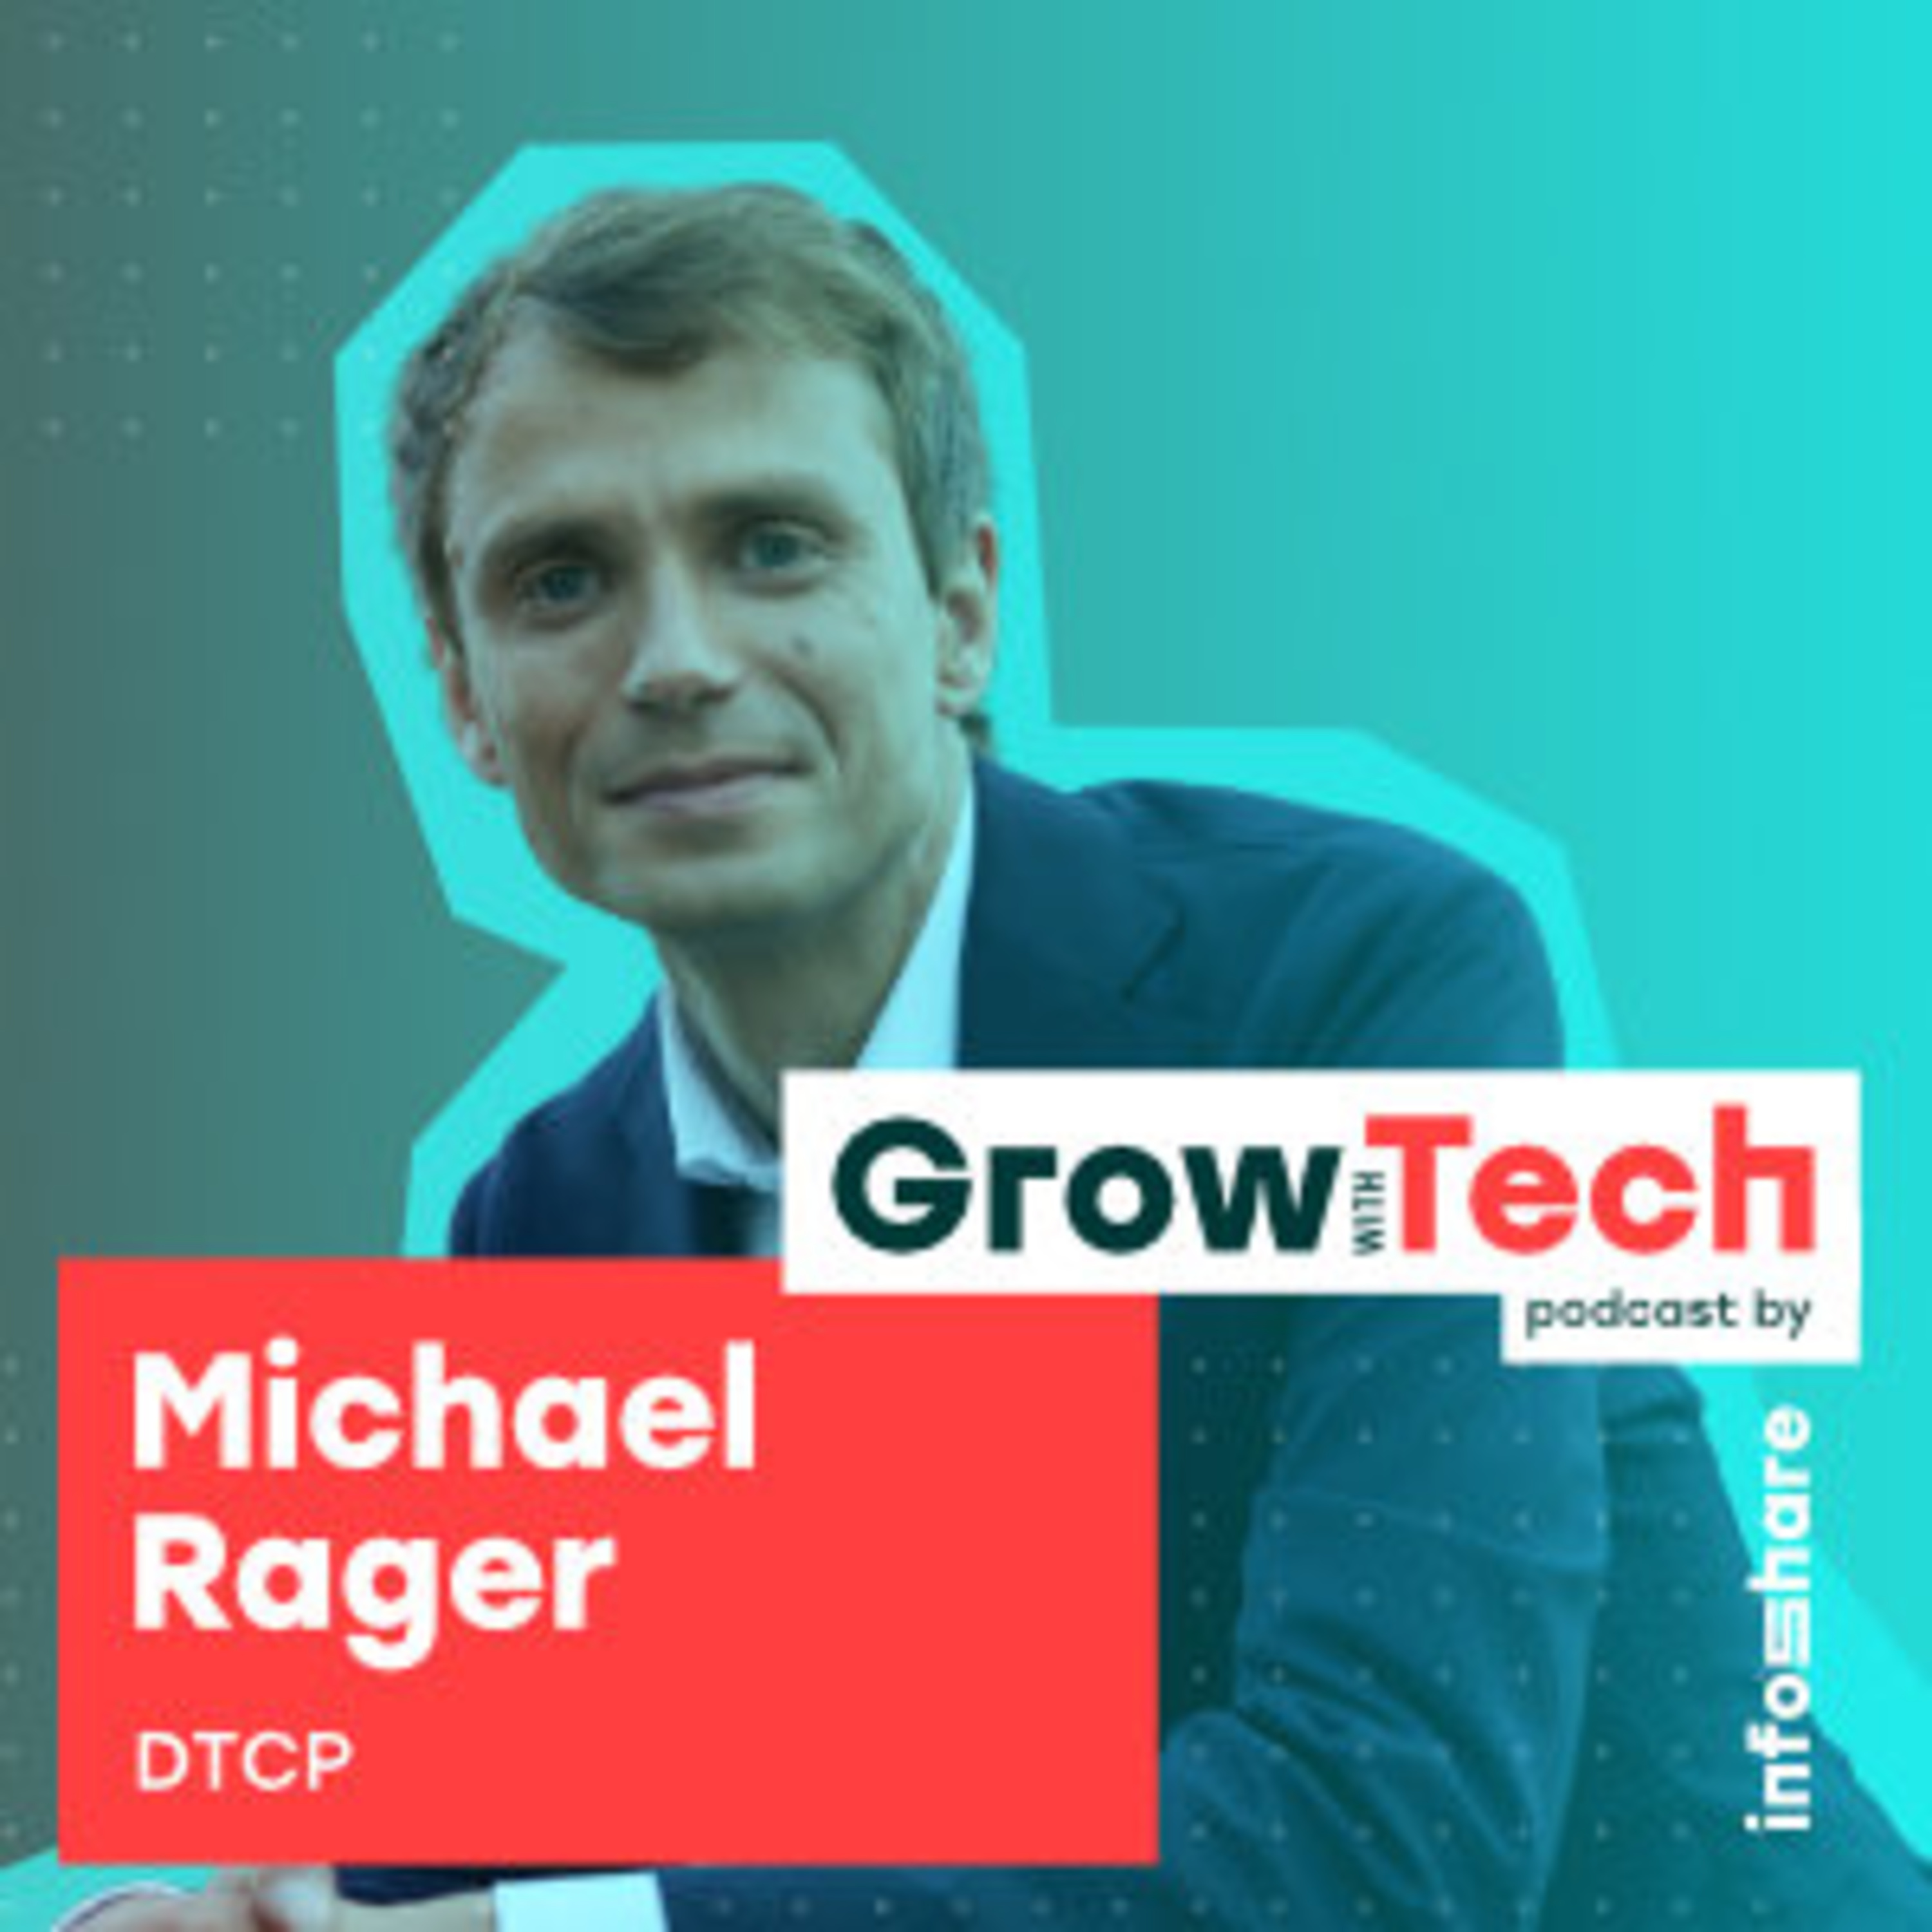 What investors look for in startups? | Michael Rager (DTCP)